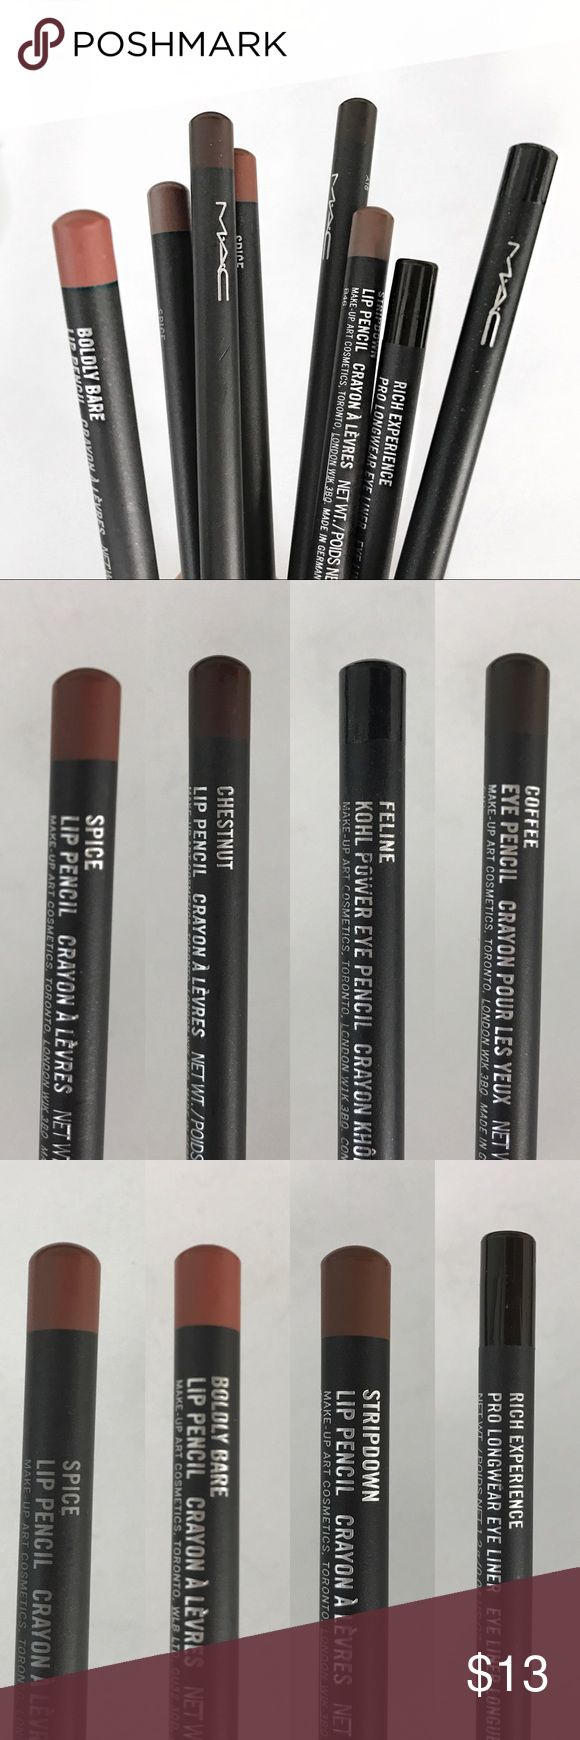 MAC Lip Liner or Eye Pencil MAC Lip liners and Eye pencils 4 sticks for $40   Lips: - stripdown  - boldly bare - chestnut    Eye: - Feline   Used once for model show *  Let me know if interested or have questions :) MAC Cosmetics Makeup Lip Liner